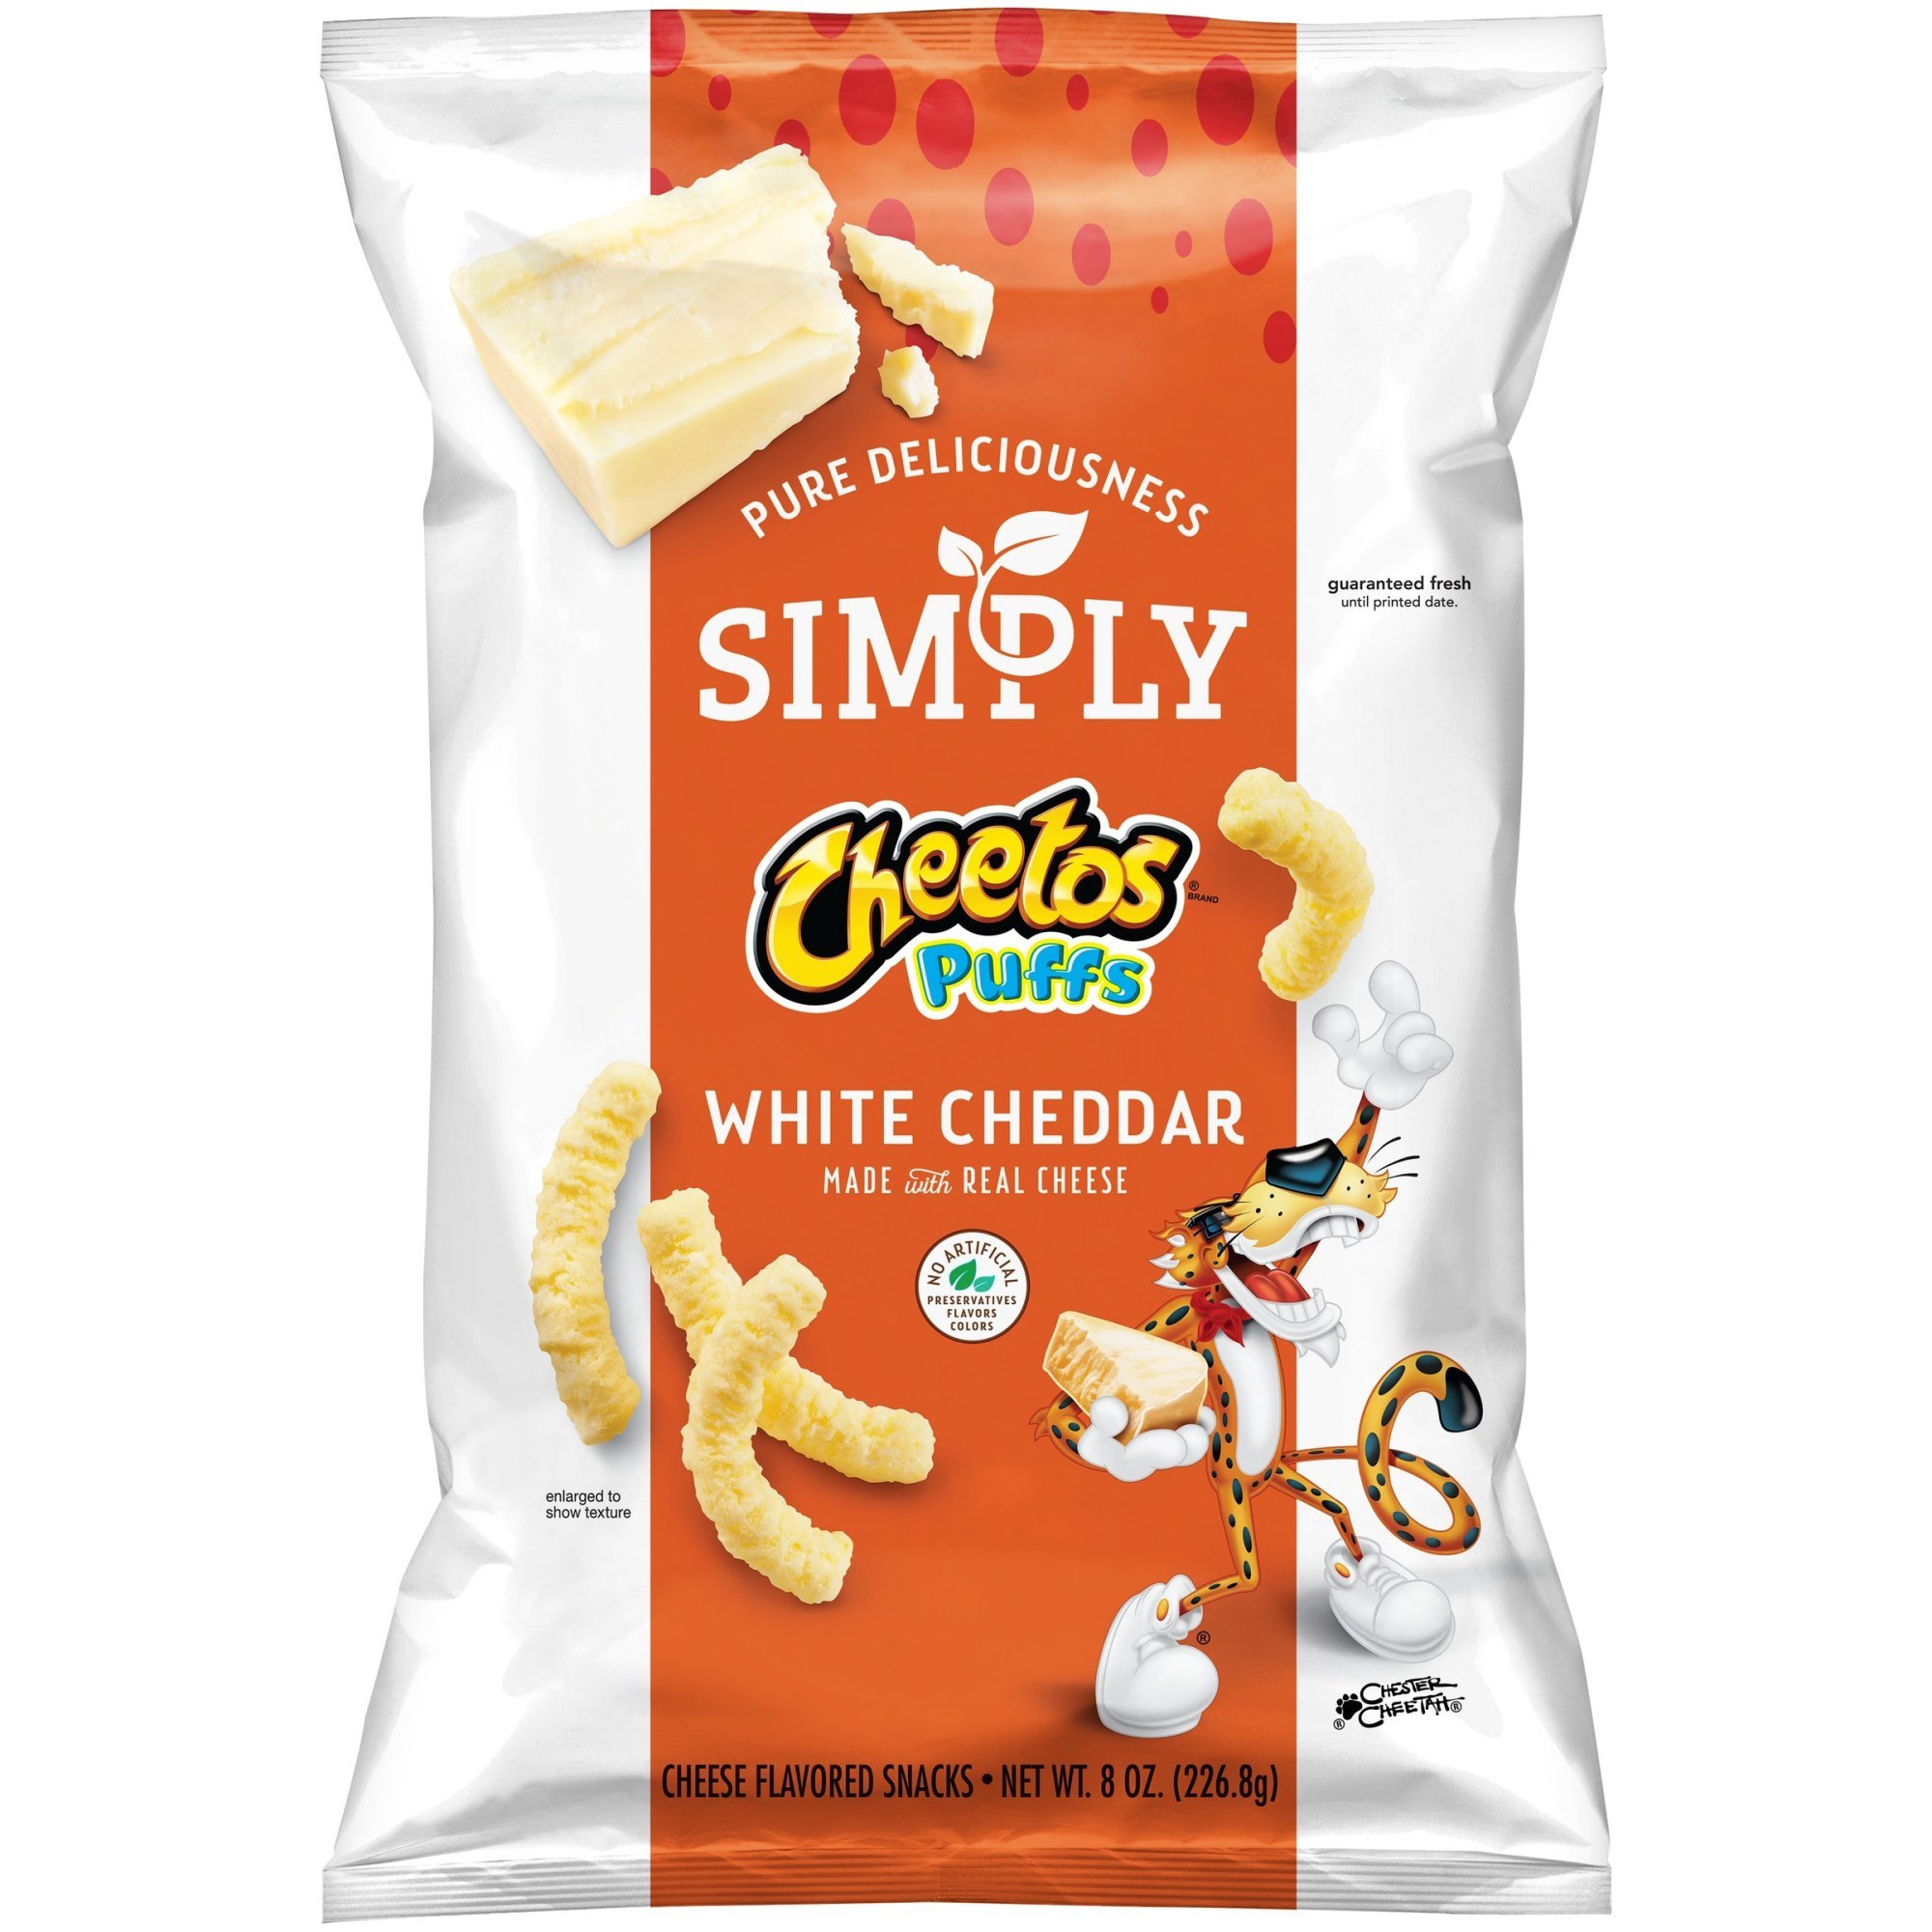 Simply Cheetos Puffs White Cheddar Cheese Flavored Snacks (White Cheddar 8 oz.)